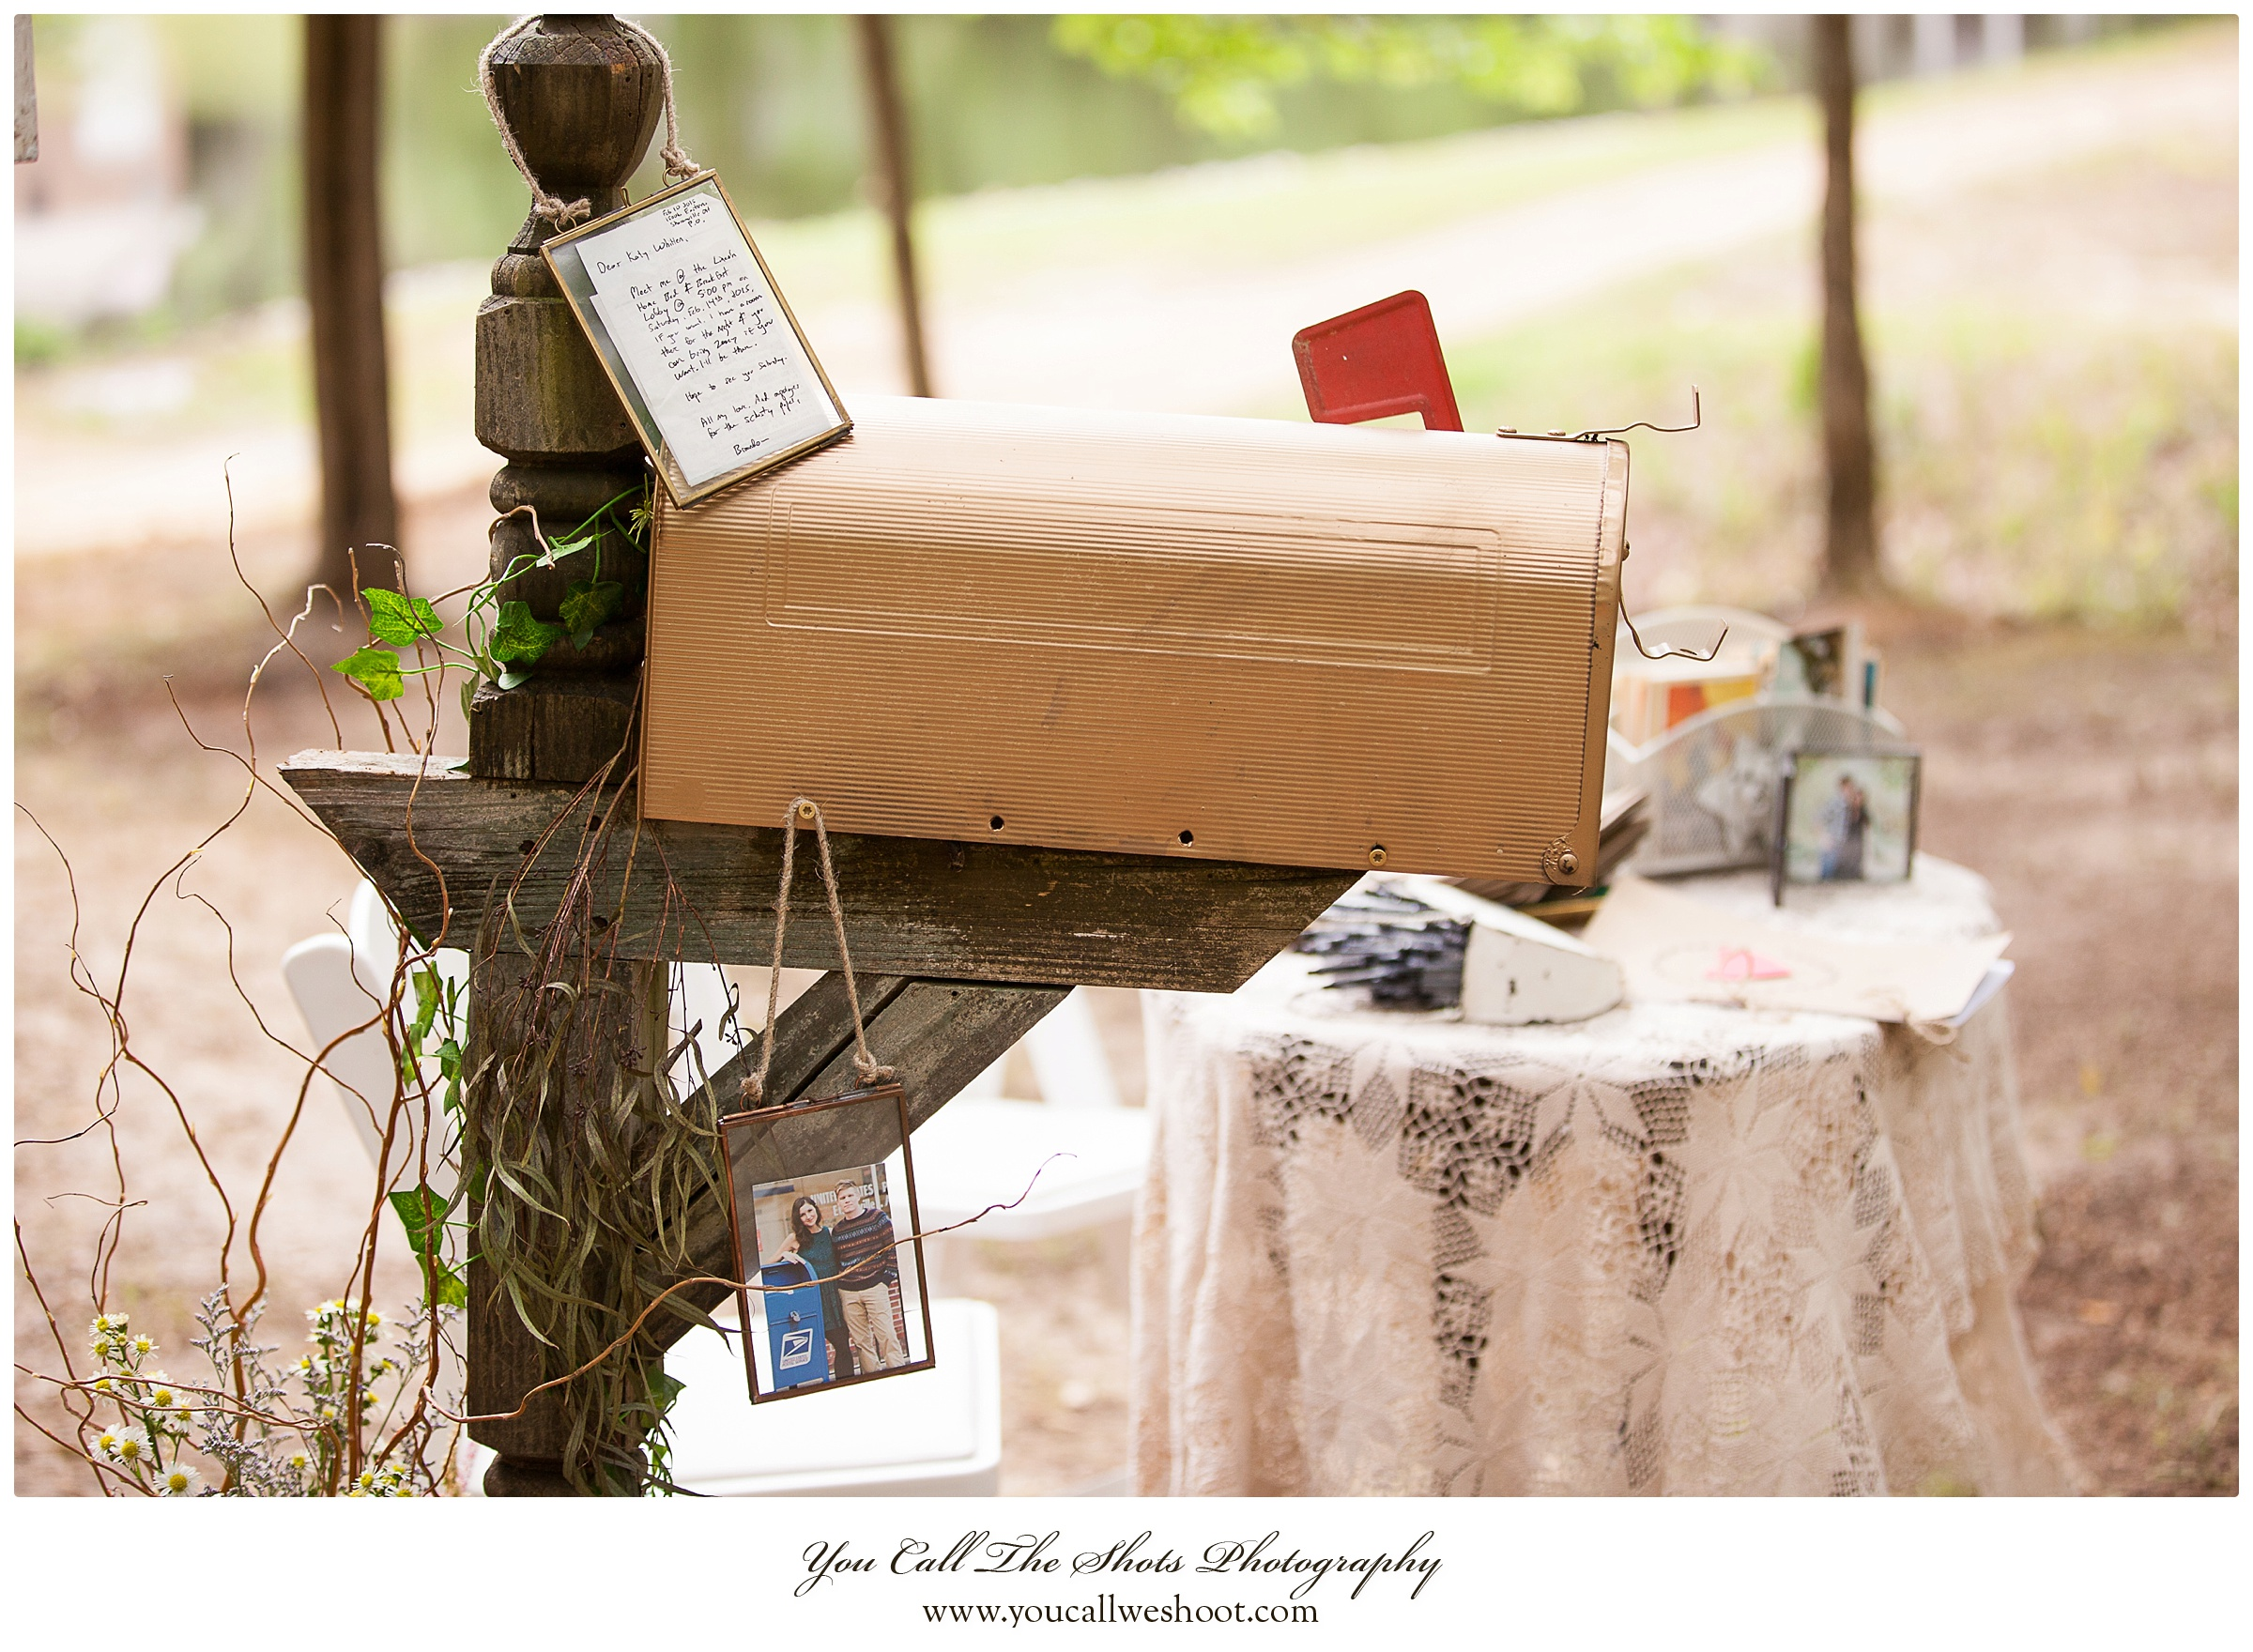 This mailbox told the story of how Katy-Whitten and Brandon's love grew through their letters.